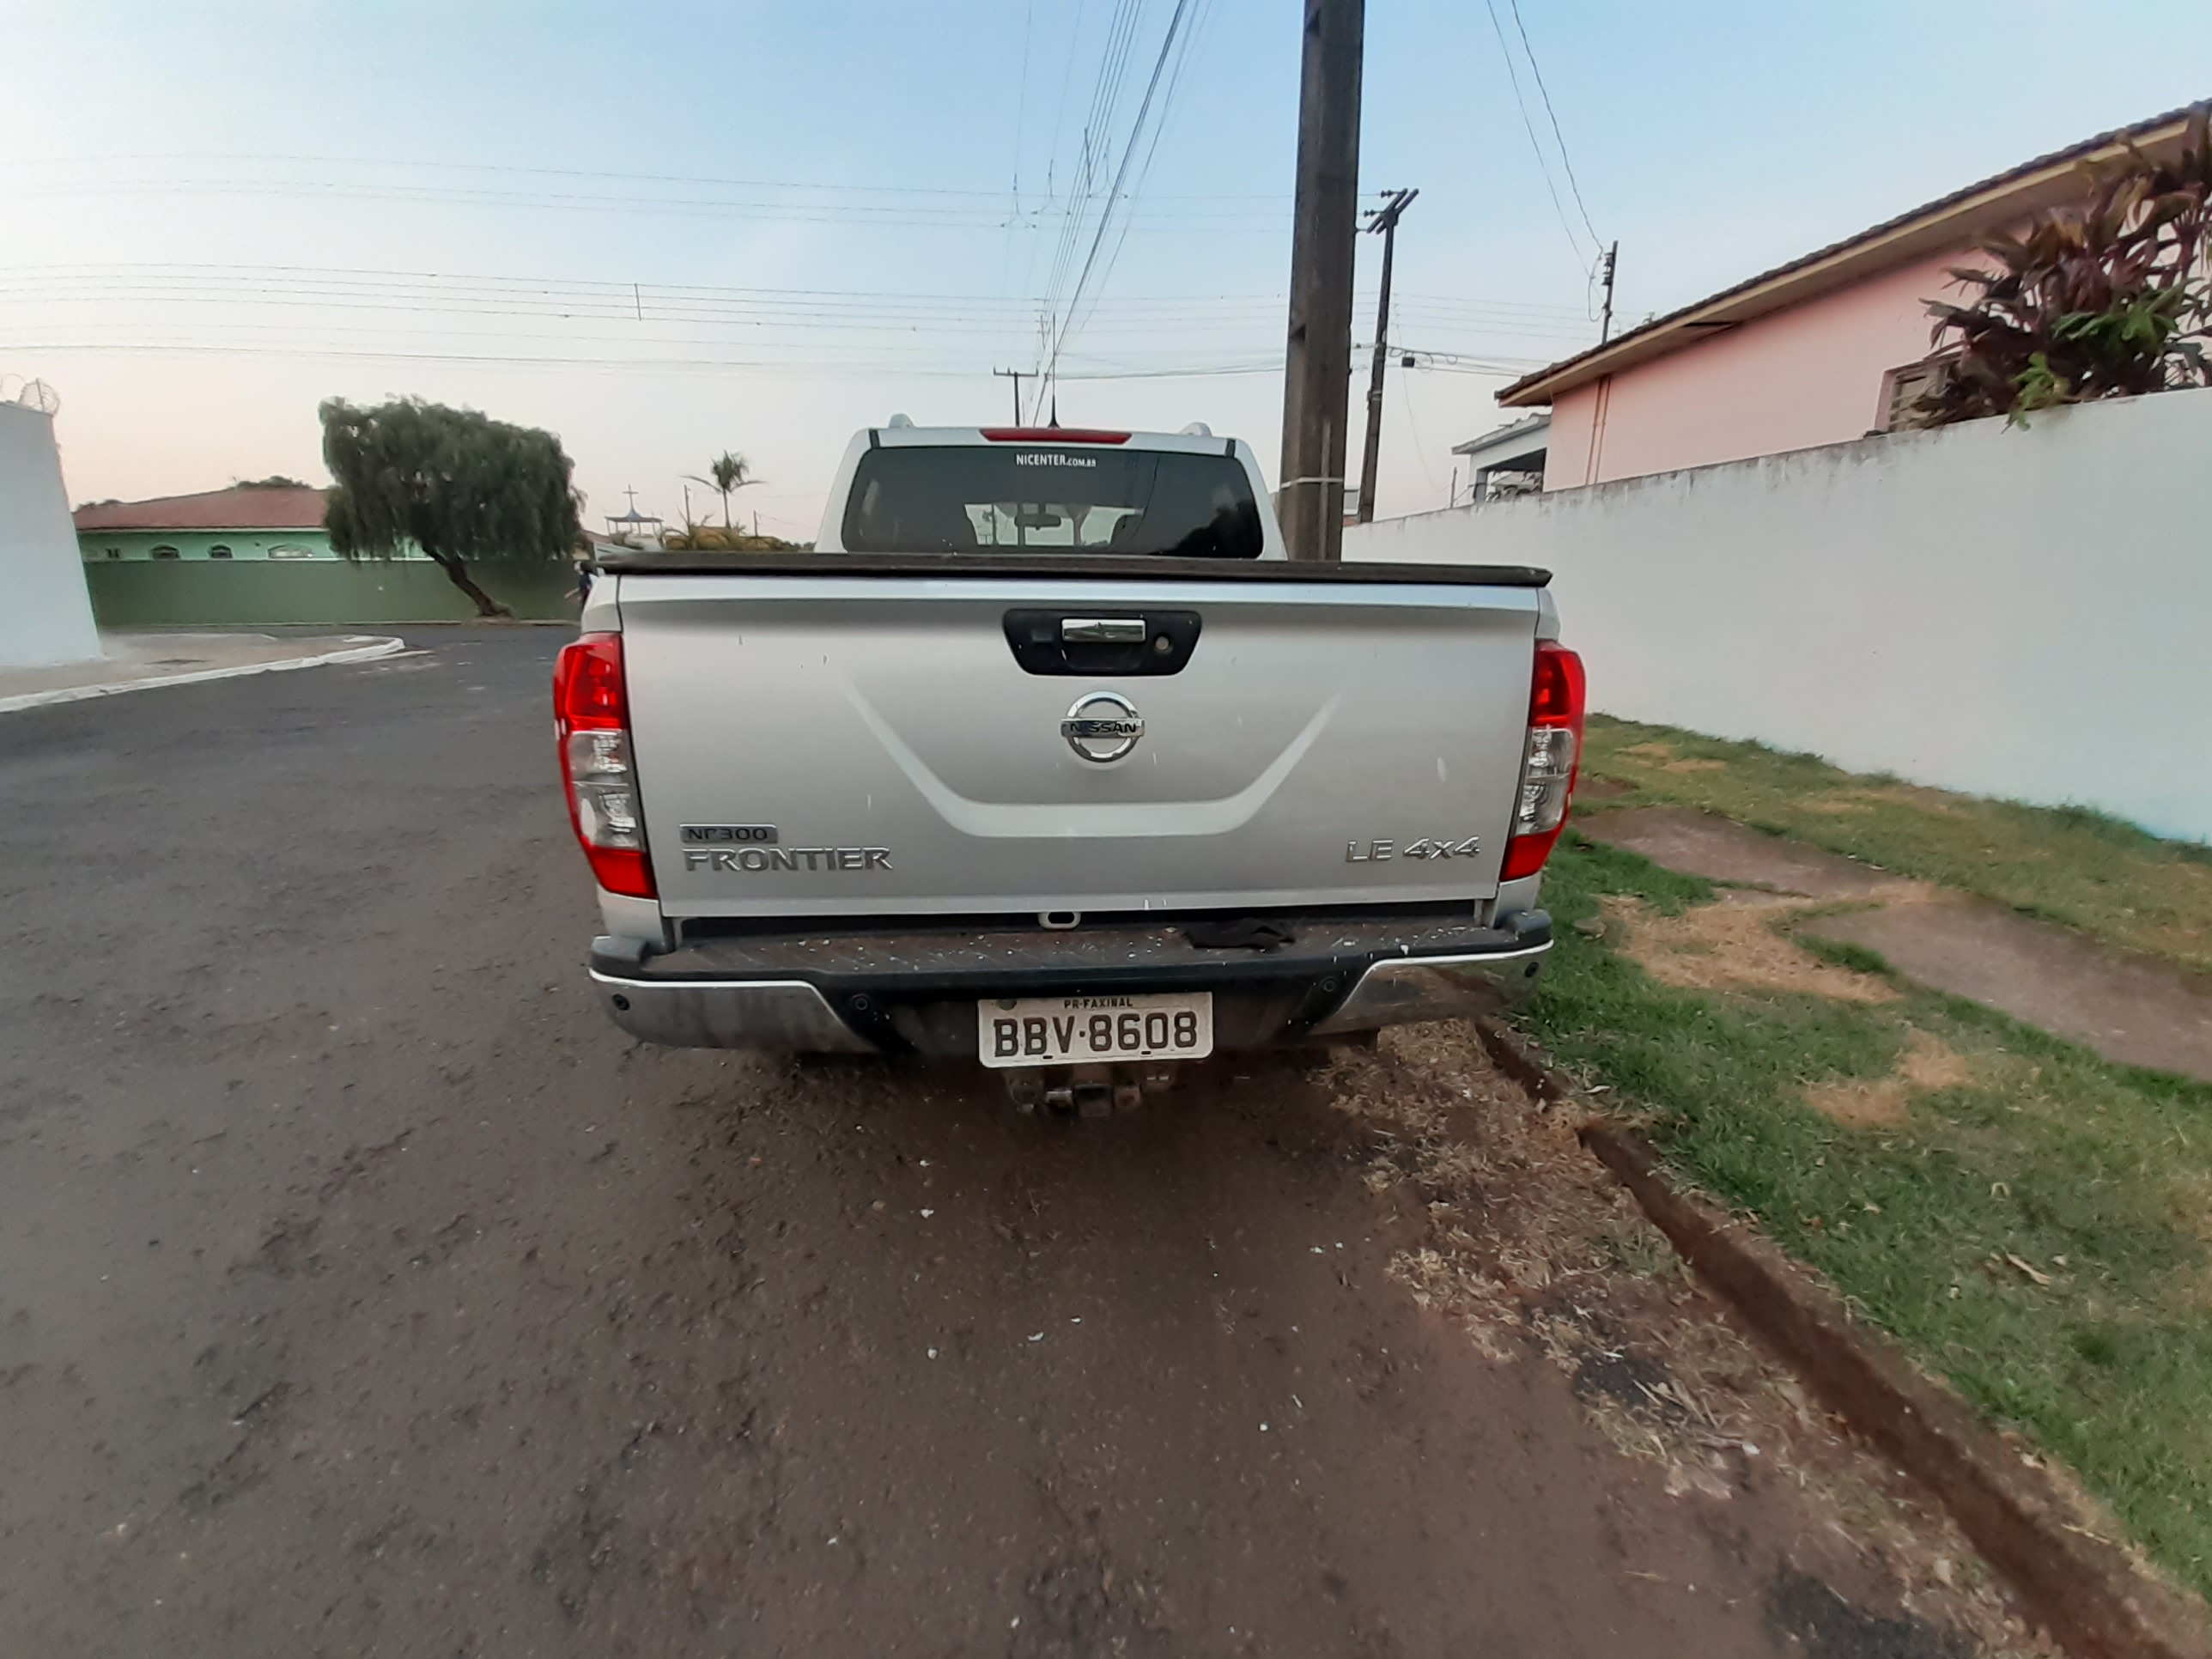 LOTE 48243